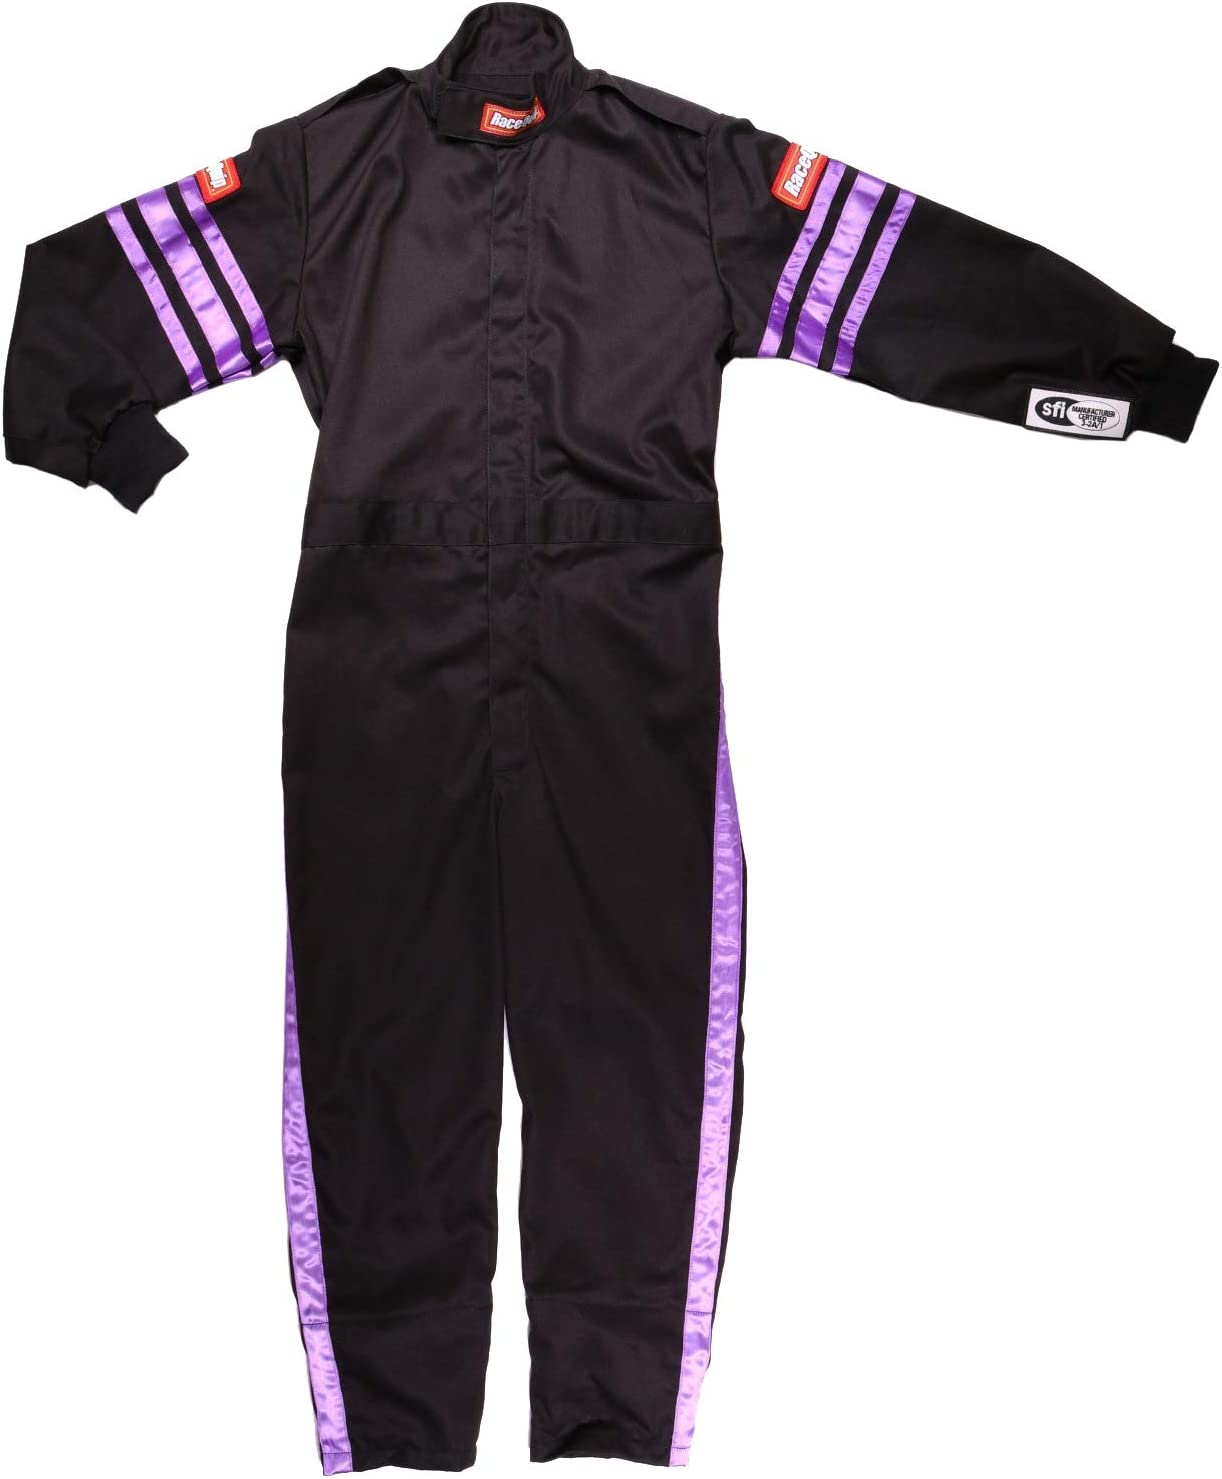 RaceQuip Unisex-Child Kids Single Layer Suit Black, XX-Large